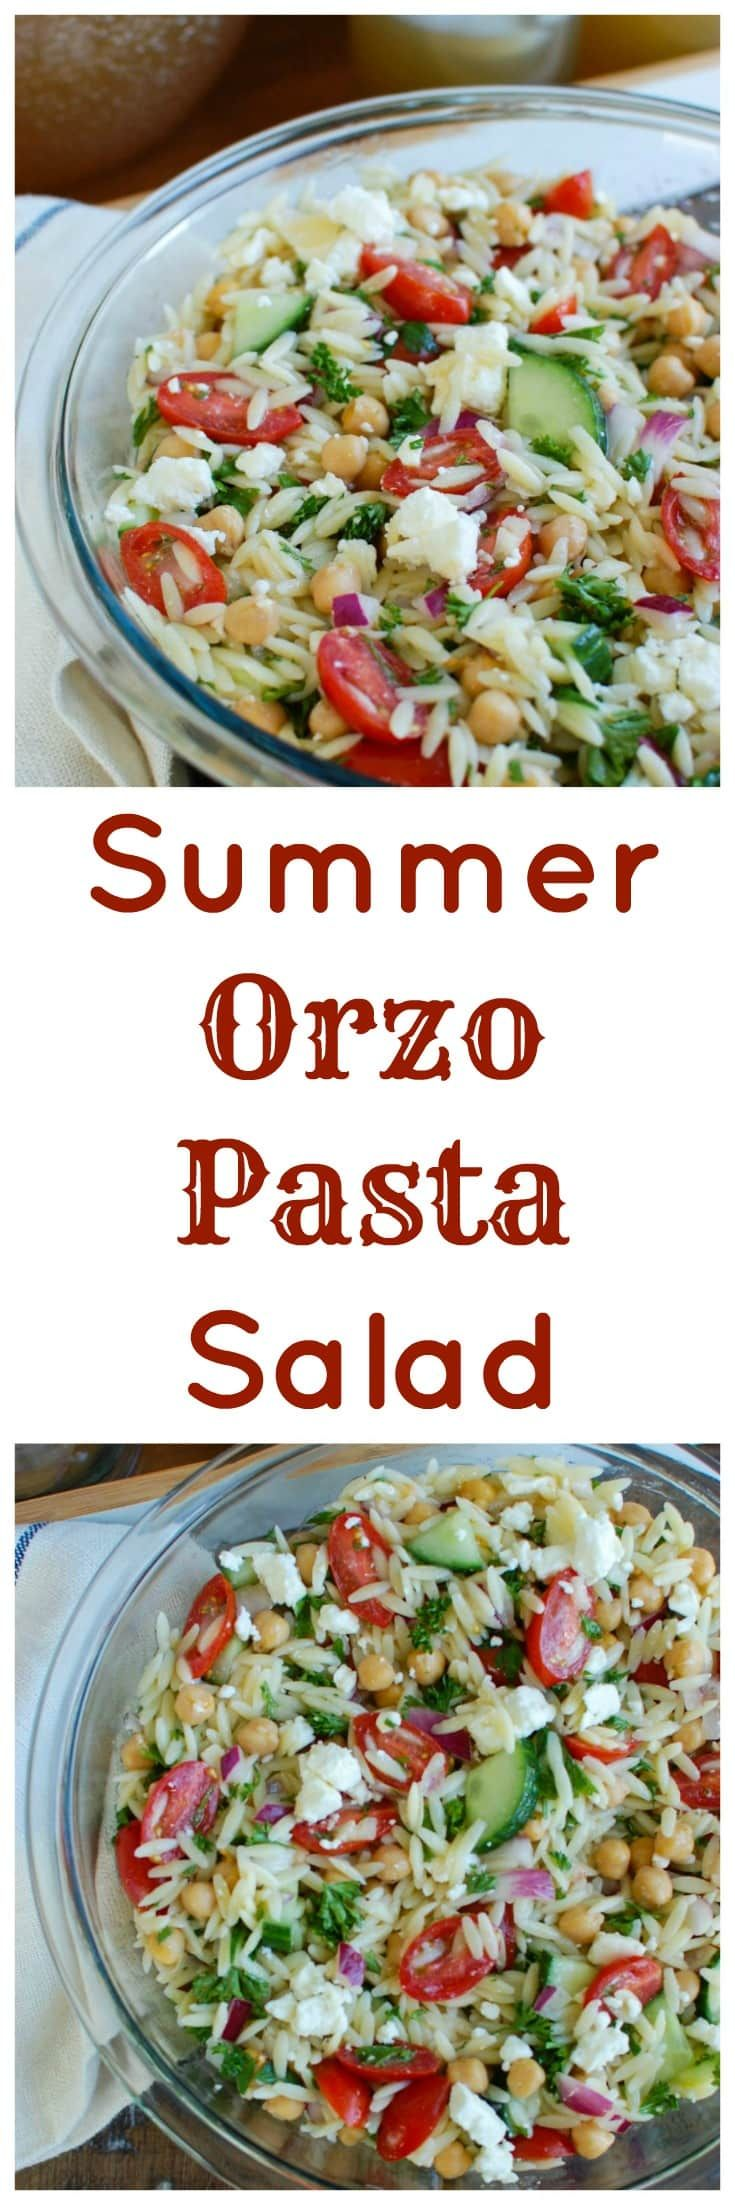 Summer Orzo Pasta Salad is a healthy pasta salad packed with lots of vegetables, chickpeas and feta cheese topped with a light red wine vinaigrette.